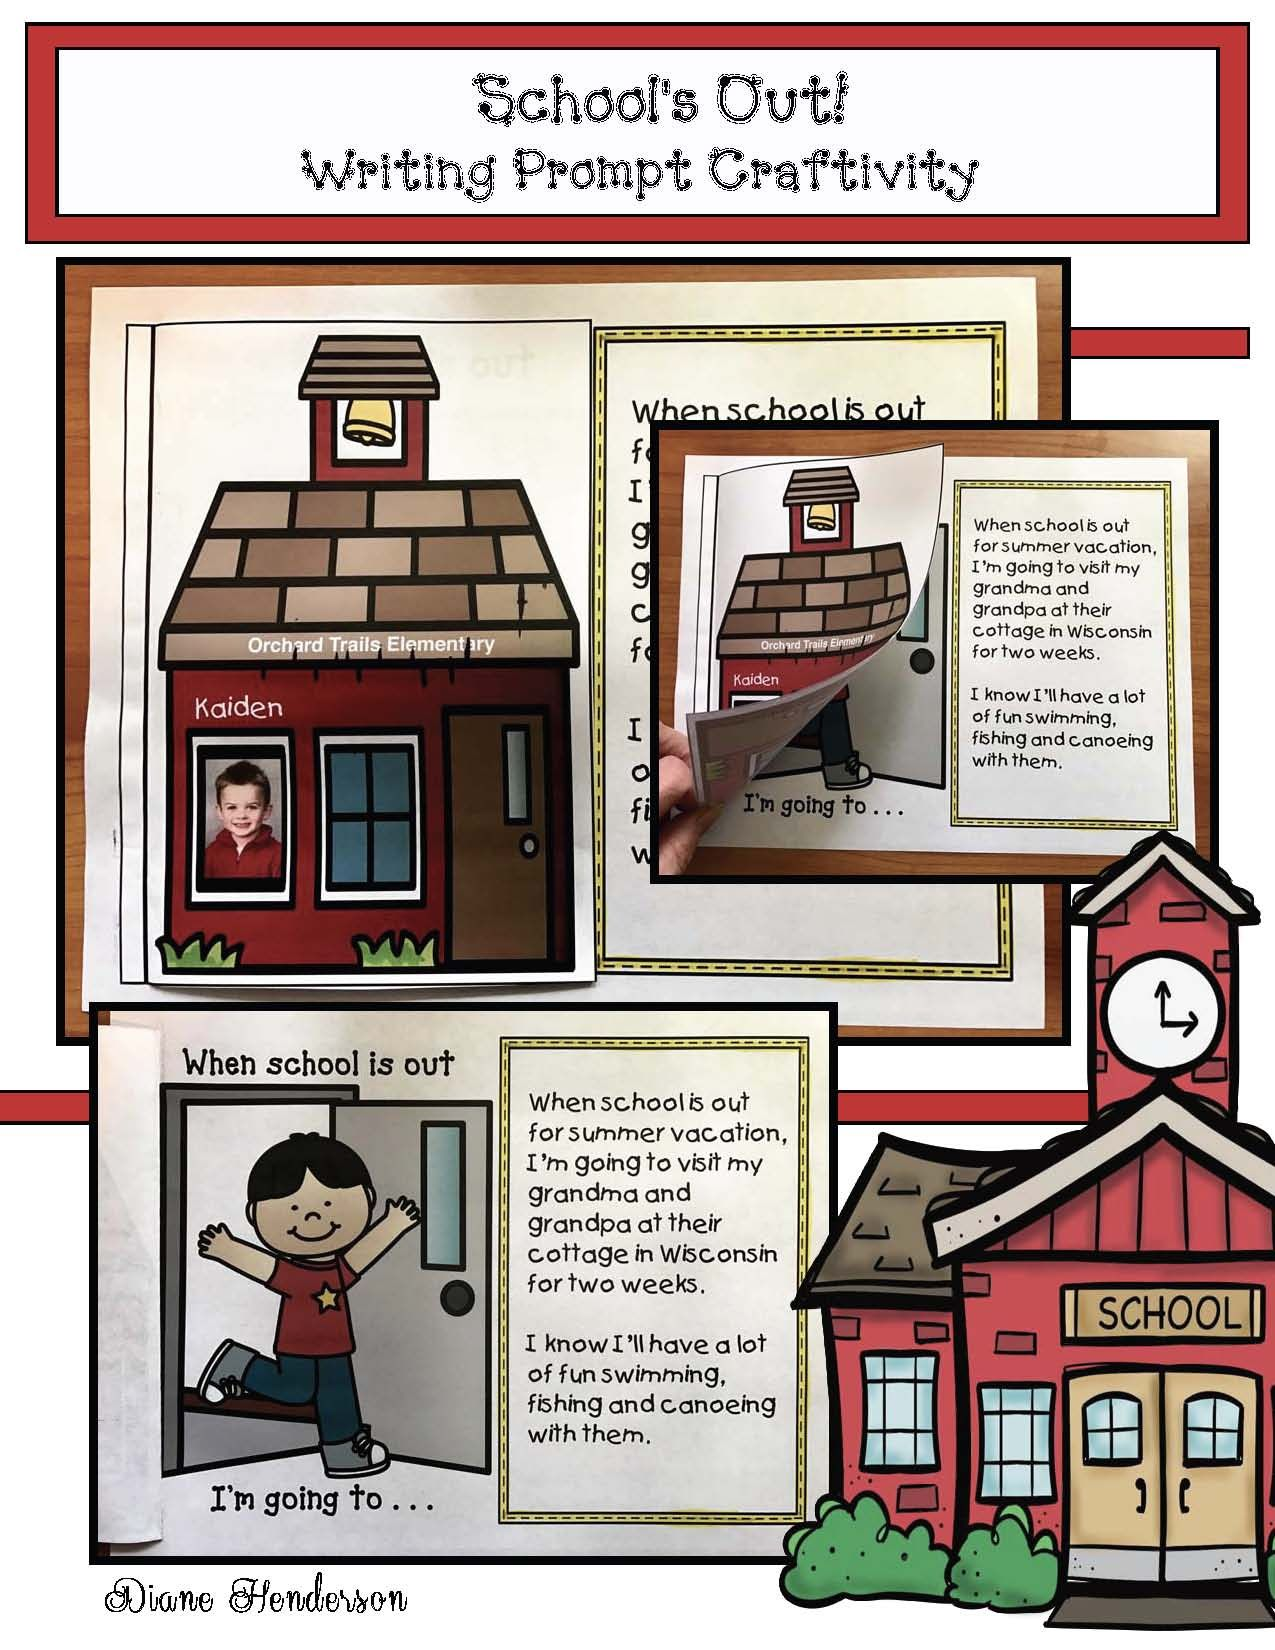 "Writing Prompts: Writing prompt craft for the end of the year or any other holiday or break. ""When school's out I'm going to..."" The schoolhouse is a ""flip the flap"" and opens to reveal 6 different picture options underneath. (Color + BW) Children glue a photo of themselves in the window. Completed projects make a terrific bulletin board display."